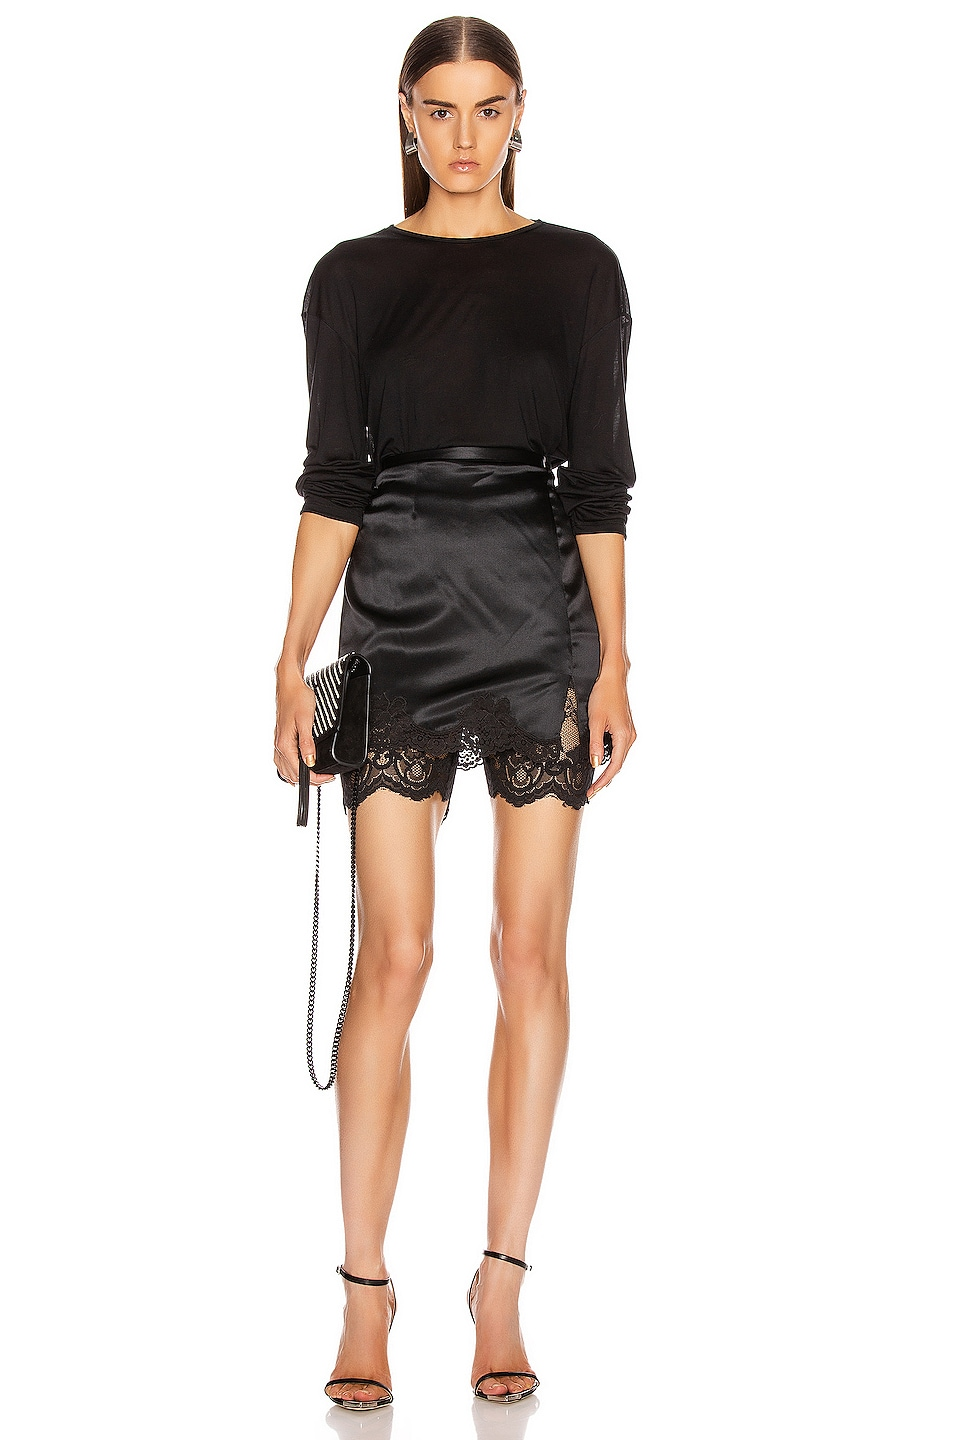 Image 4 of Atoir Only One Shorts in Black Lace